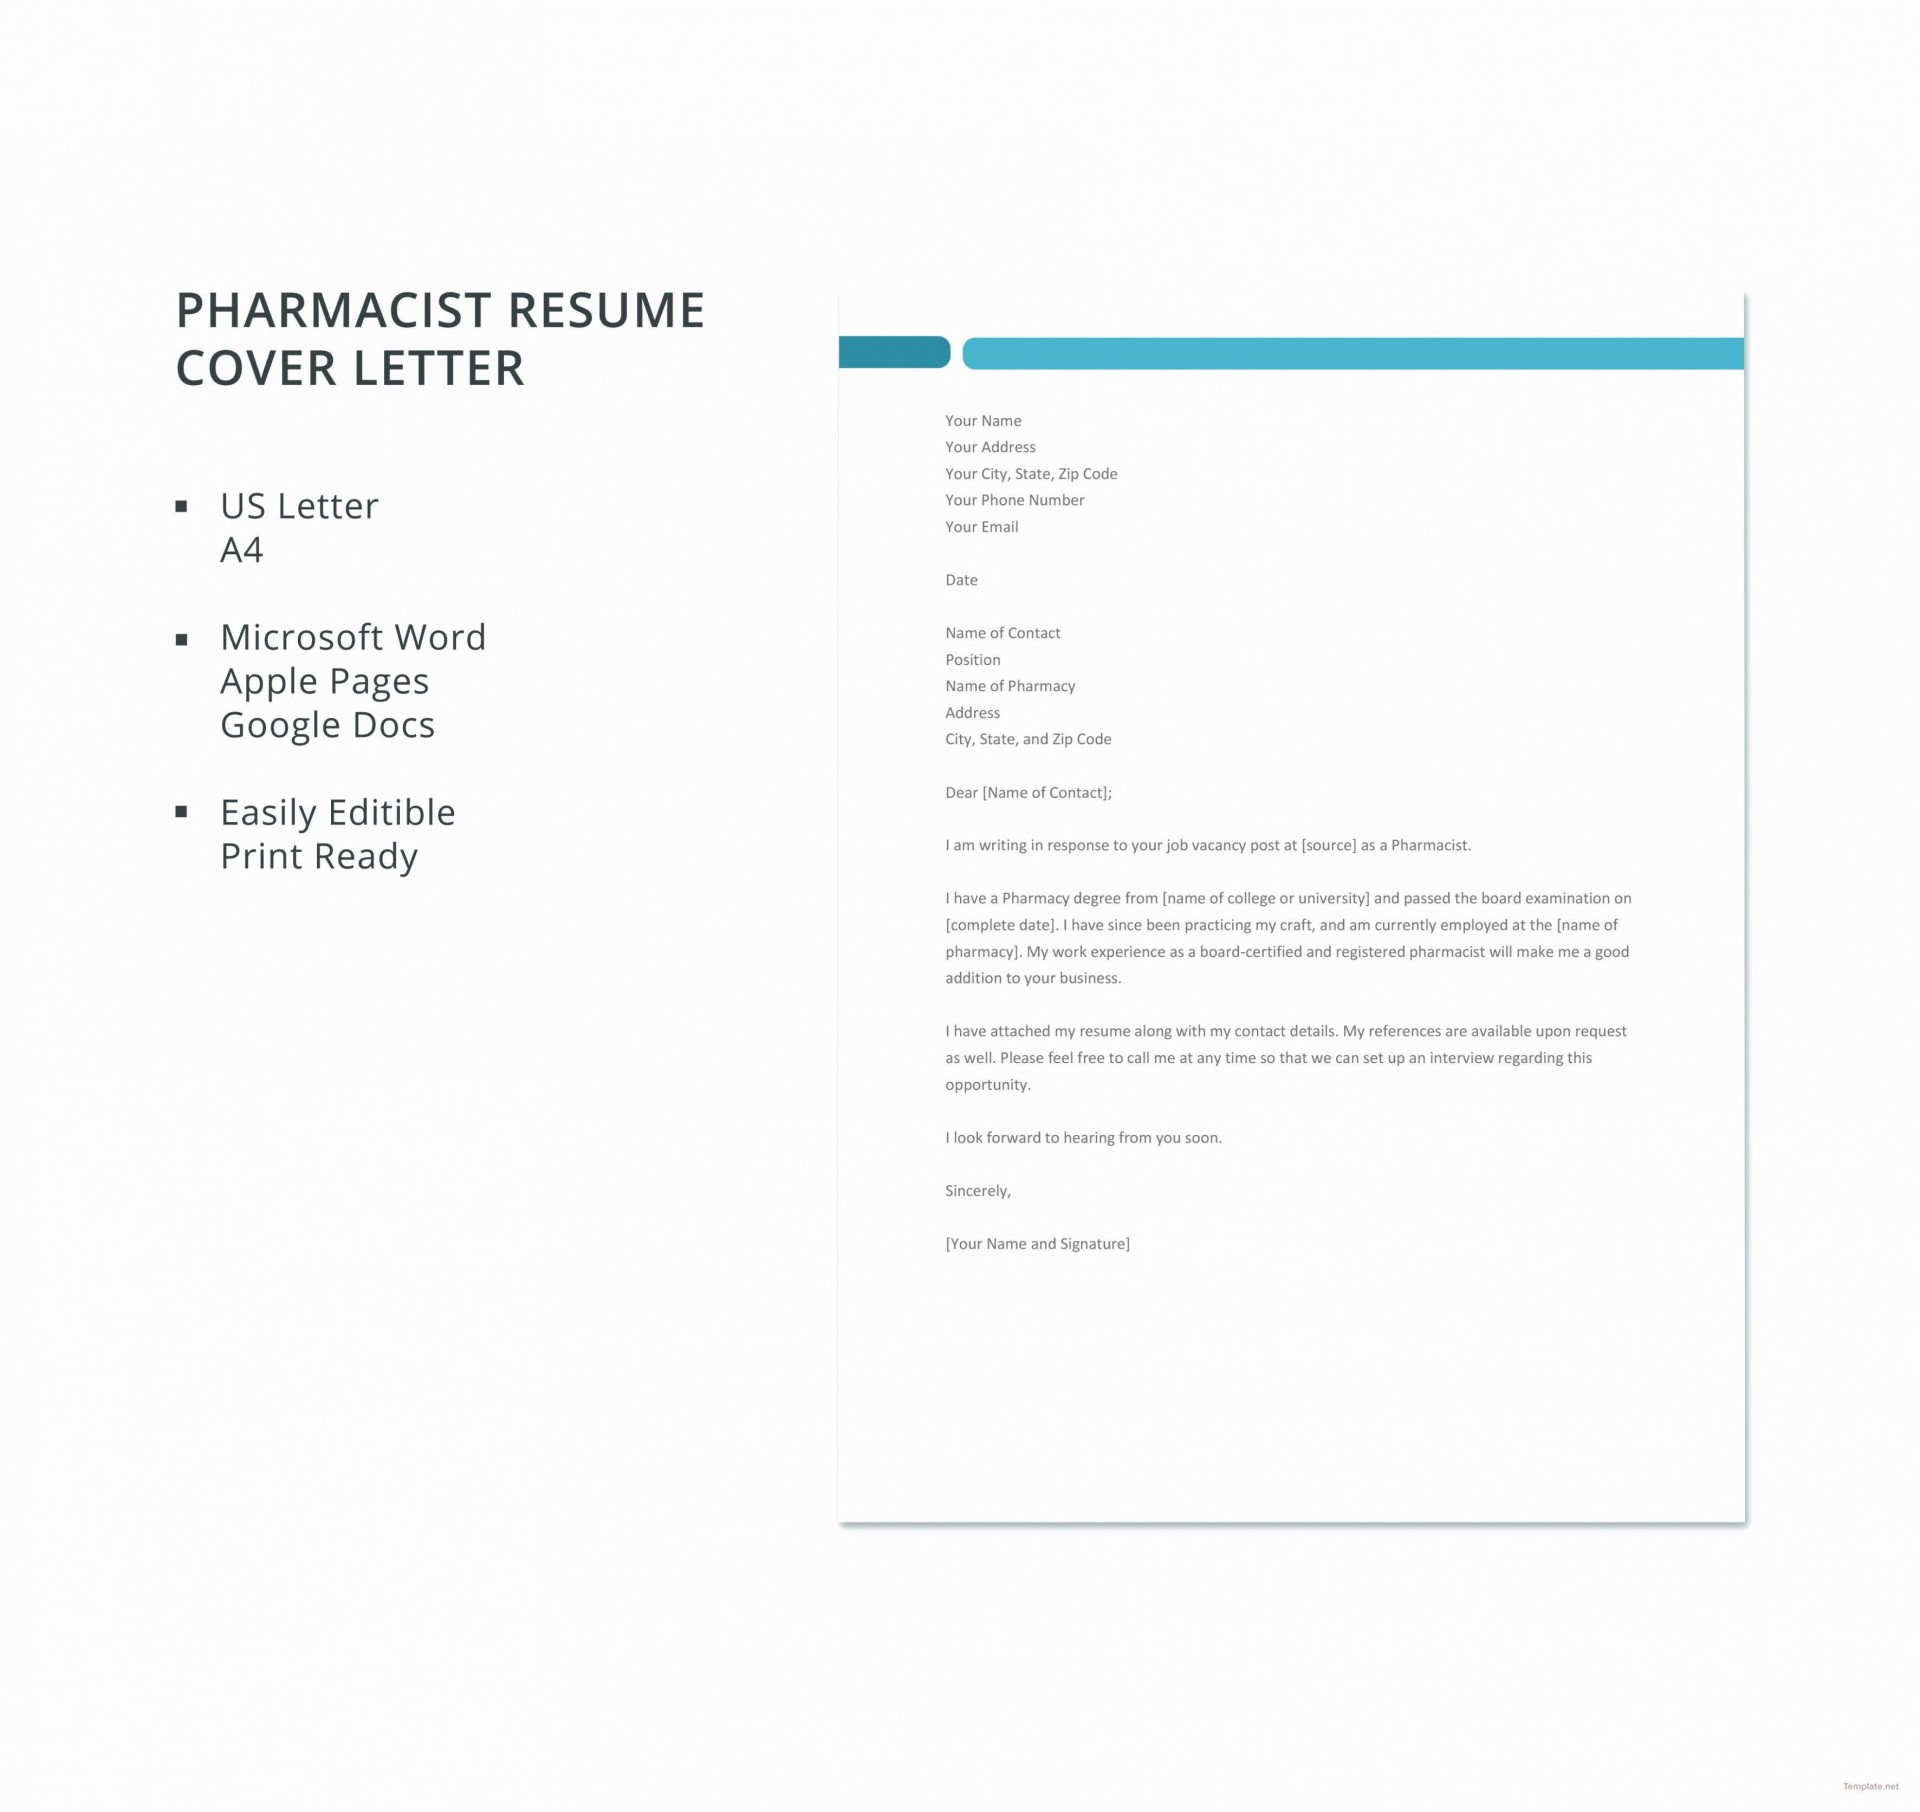 000 Archaicawful Google Doc Cover Letter Template High Resolution  Swis Free Reddit1920